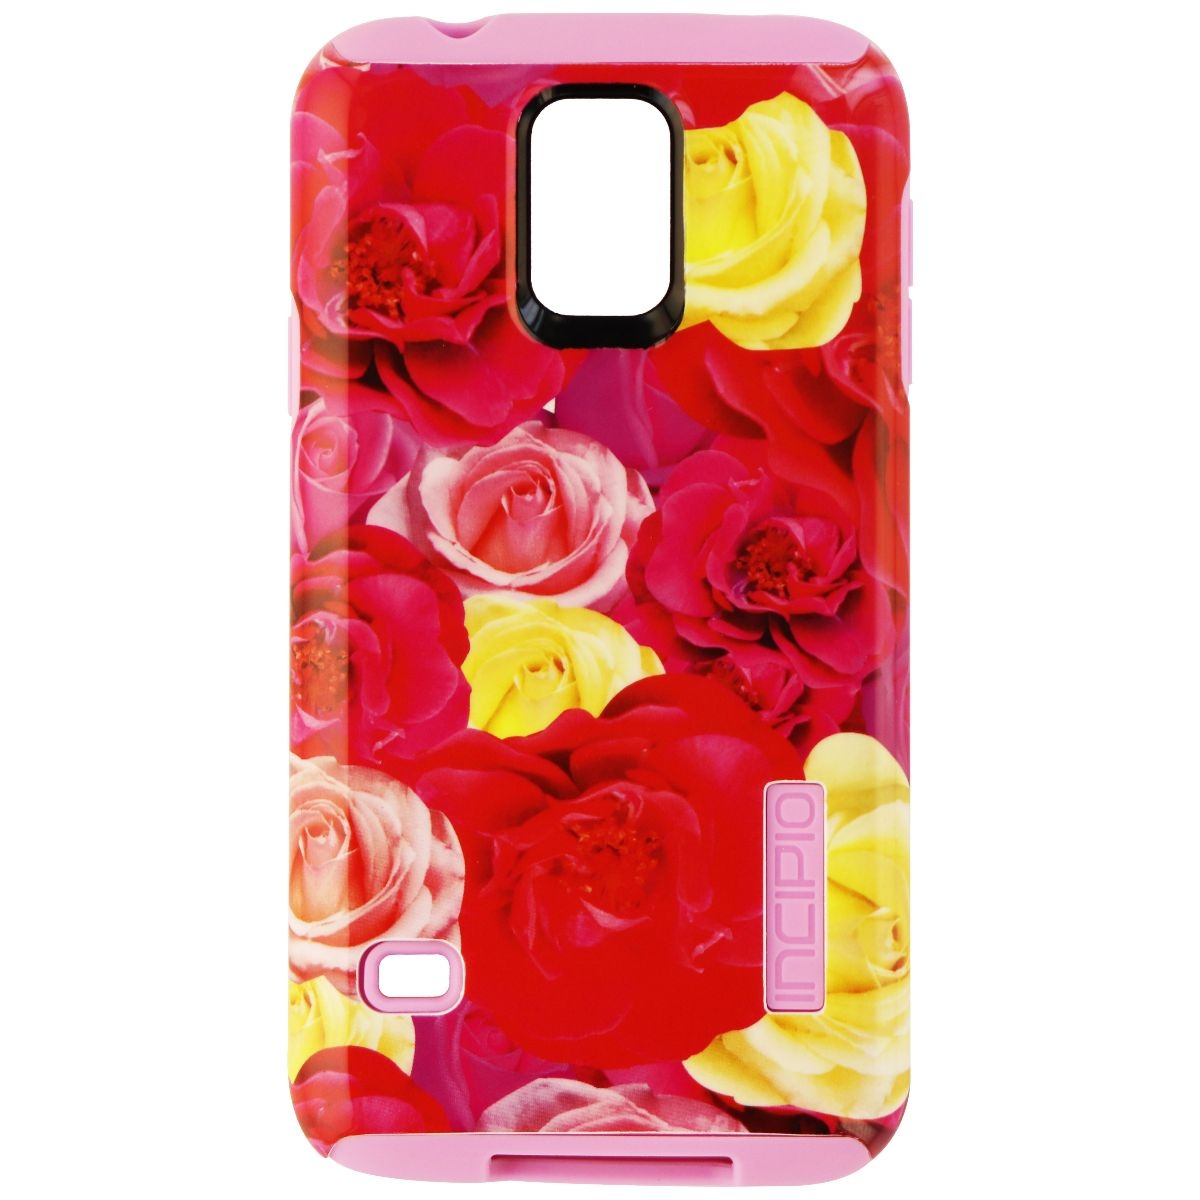 Incipio Dual Pro Series Protective Case Cover for Samsung Galaxy S5 - Flower